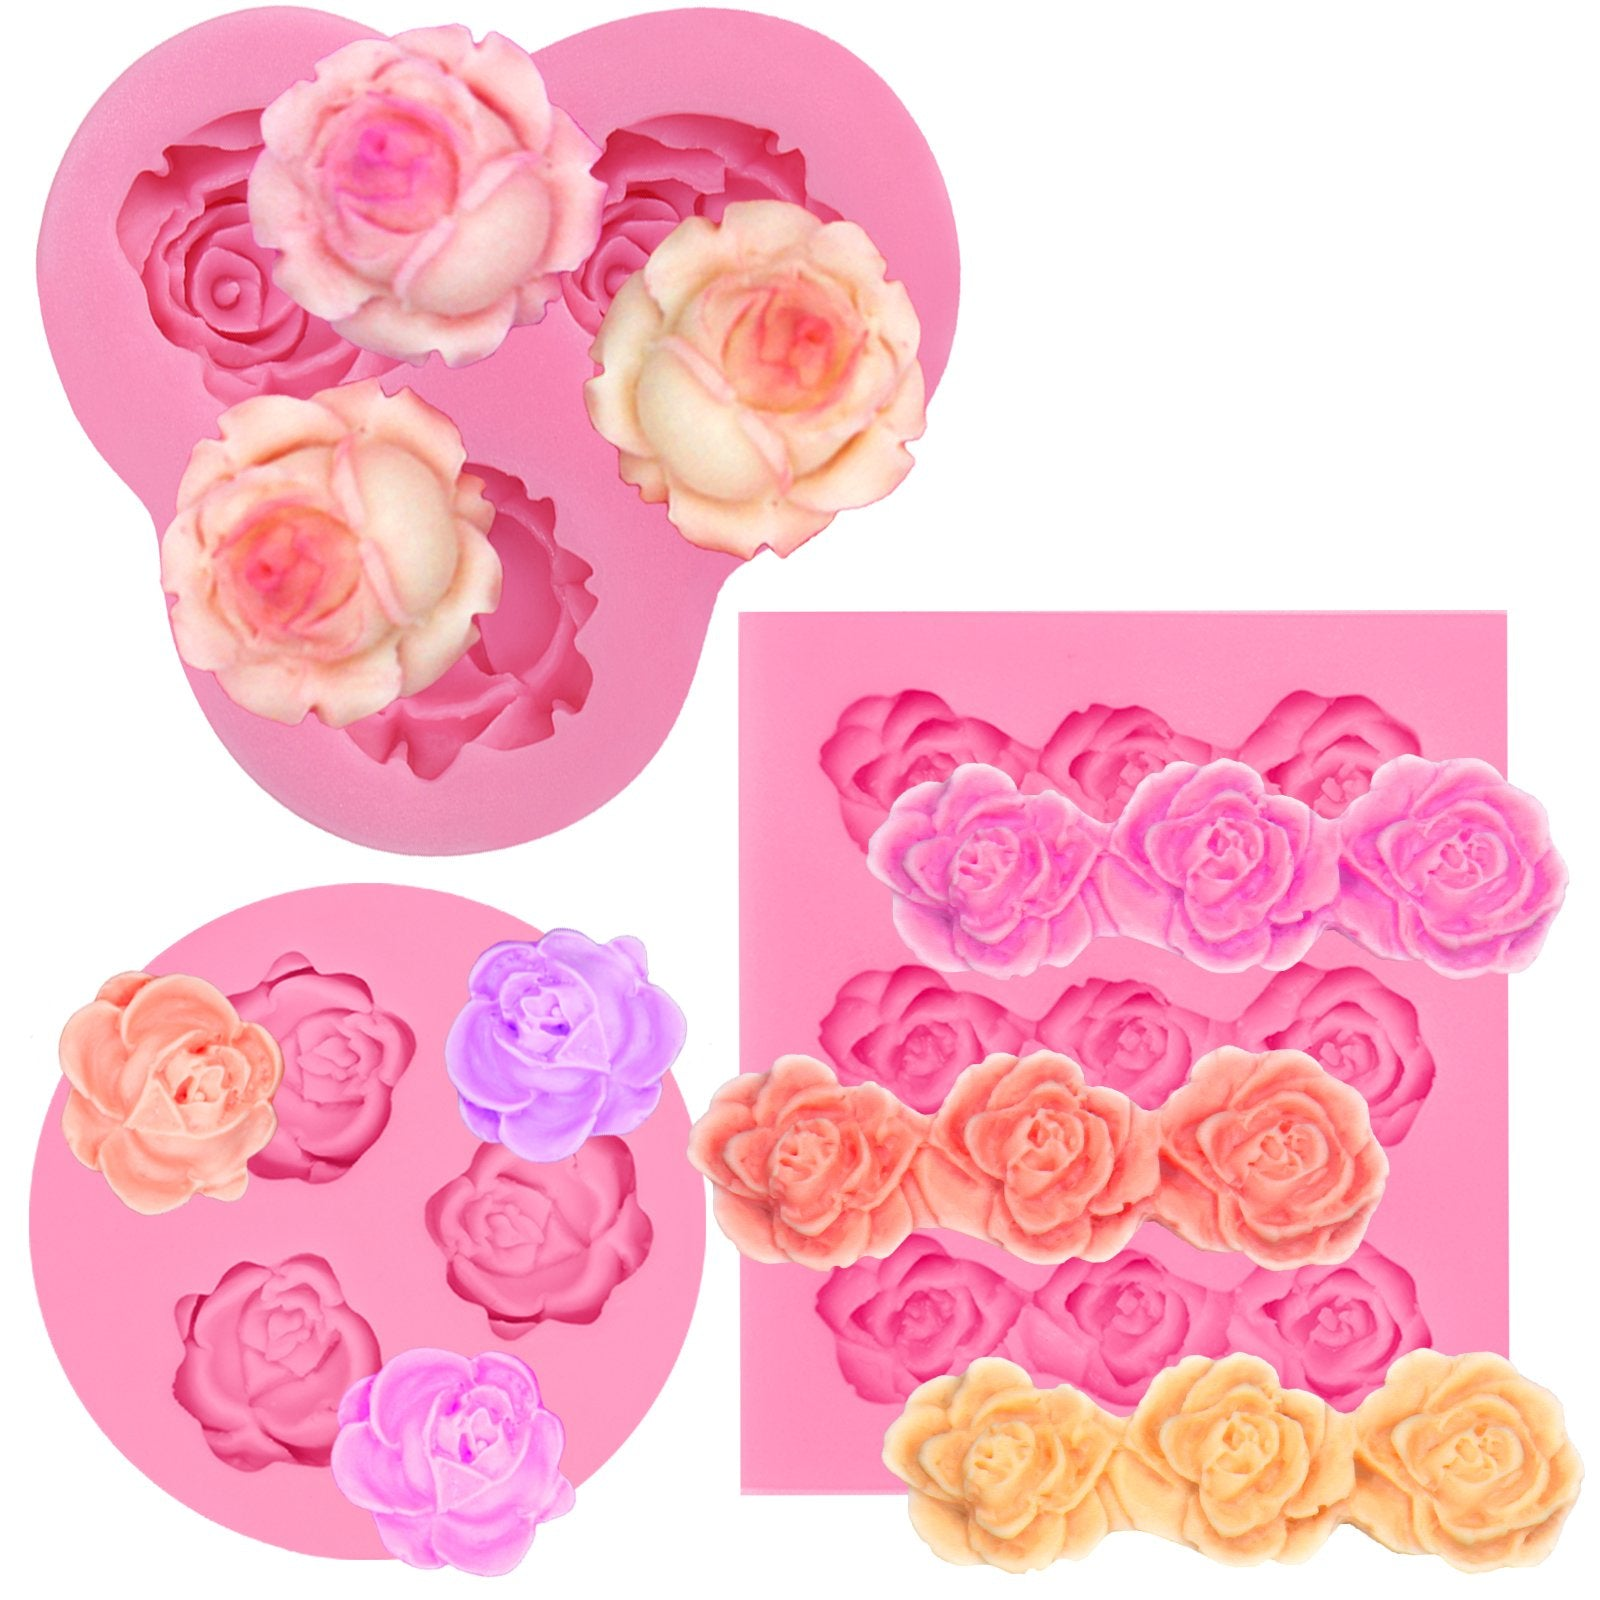 Soft and shiny silicone mould three roses of the same size